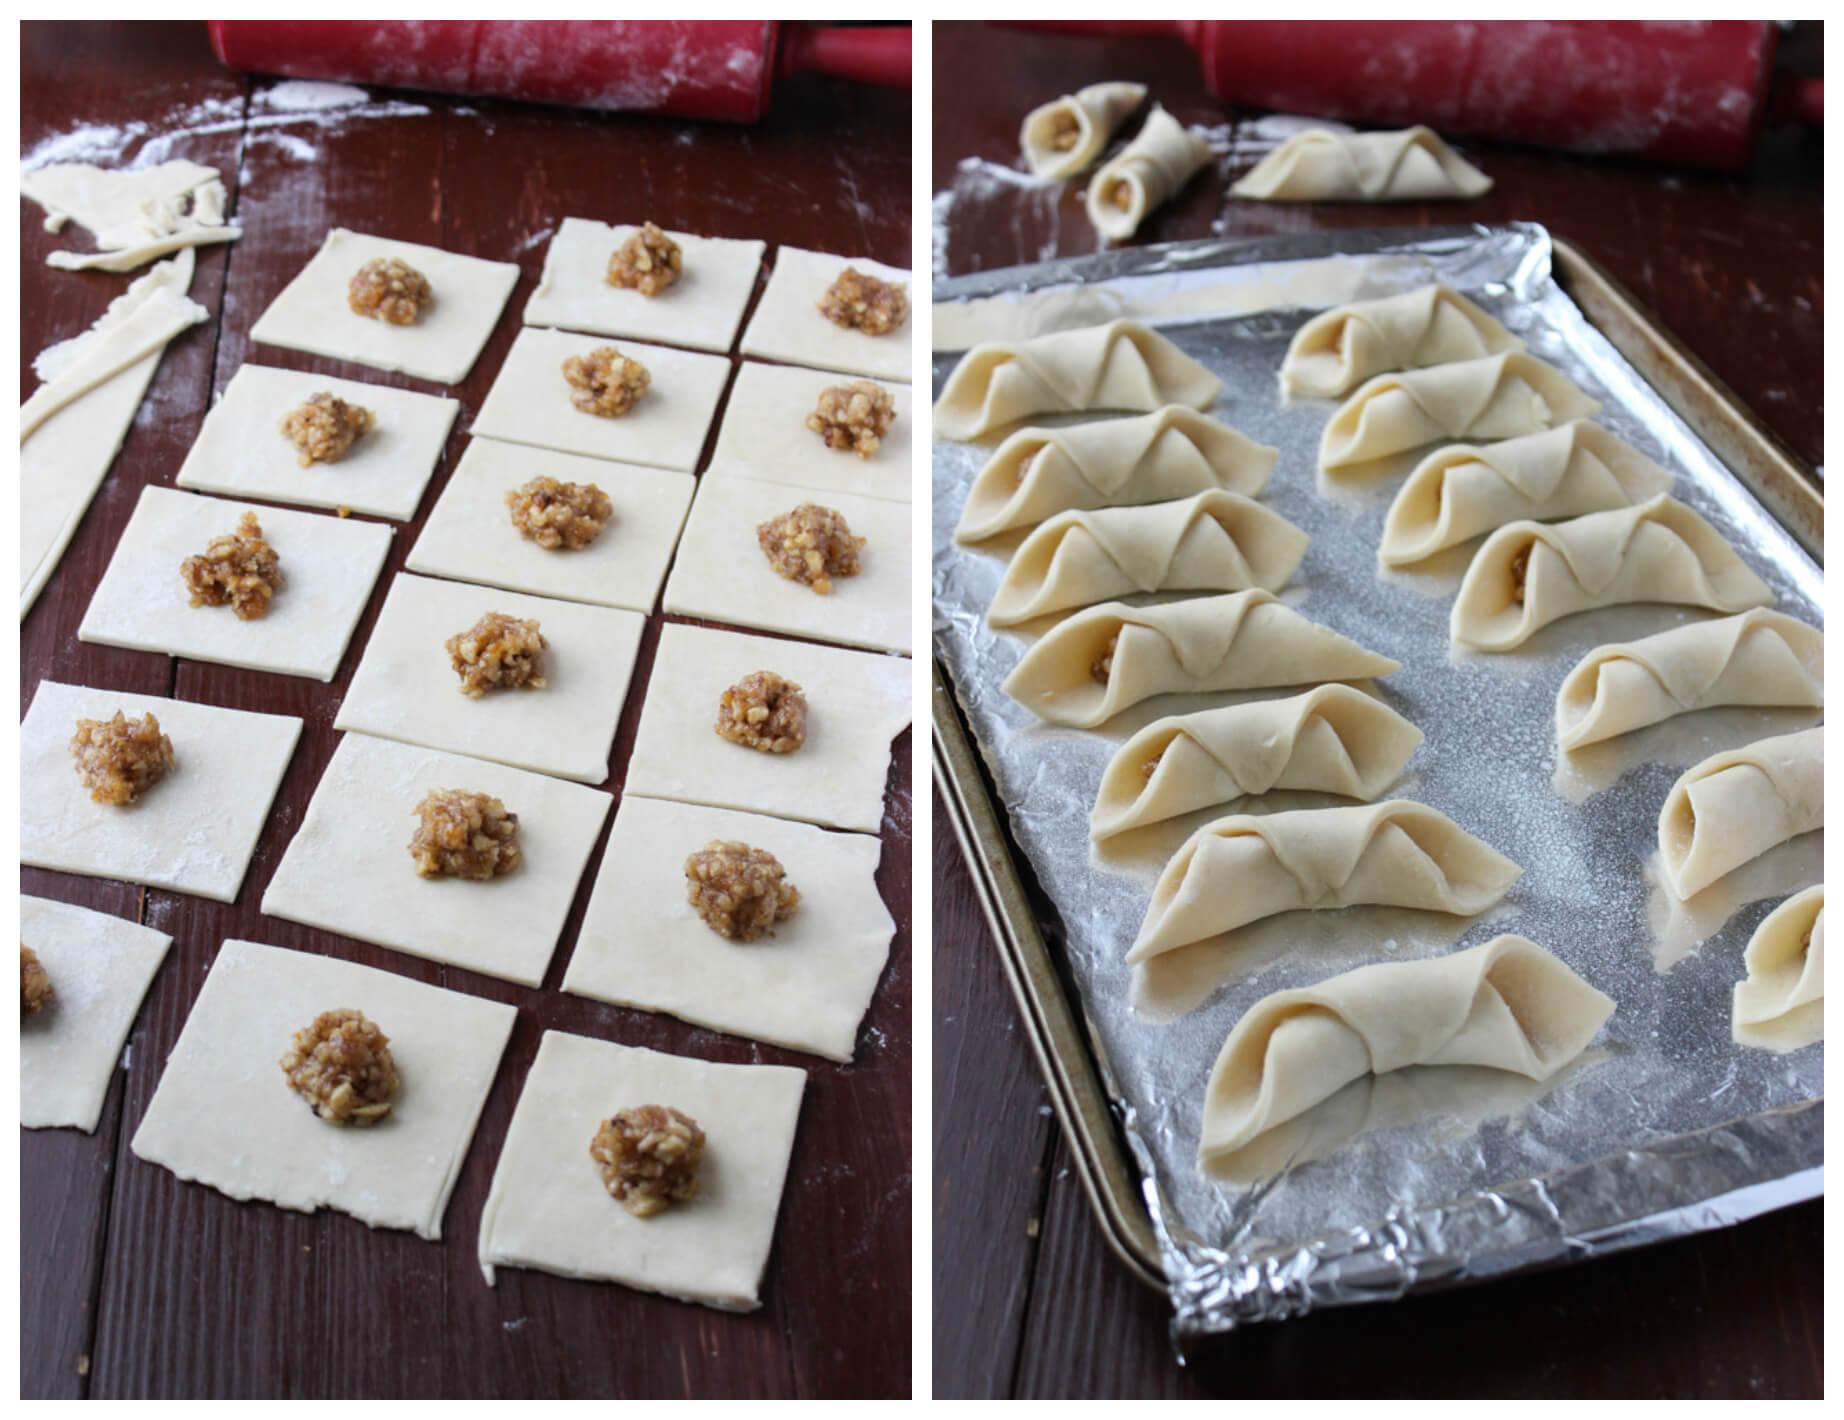 Day 6 of 12 Days of Cookies:  flaky pastry dough filled with walnut filling. These are deliciously good for Christmas!   littlebroken.com @littlebroken #christmascookies